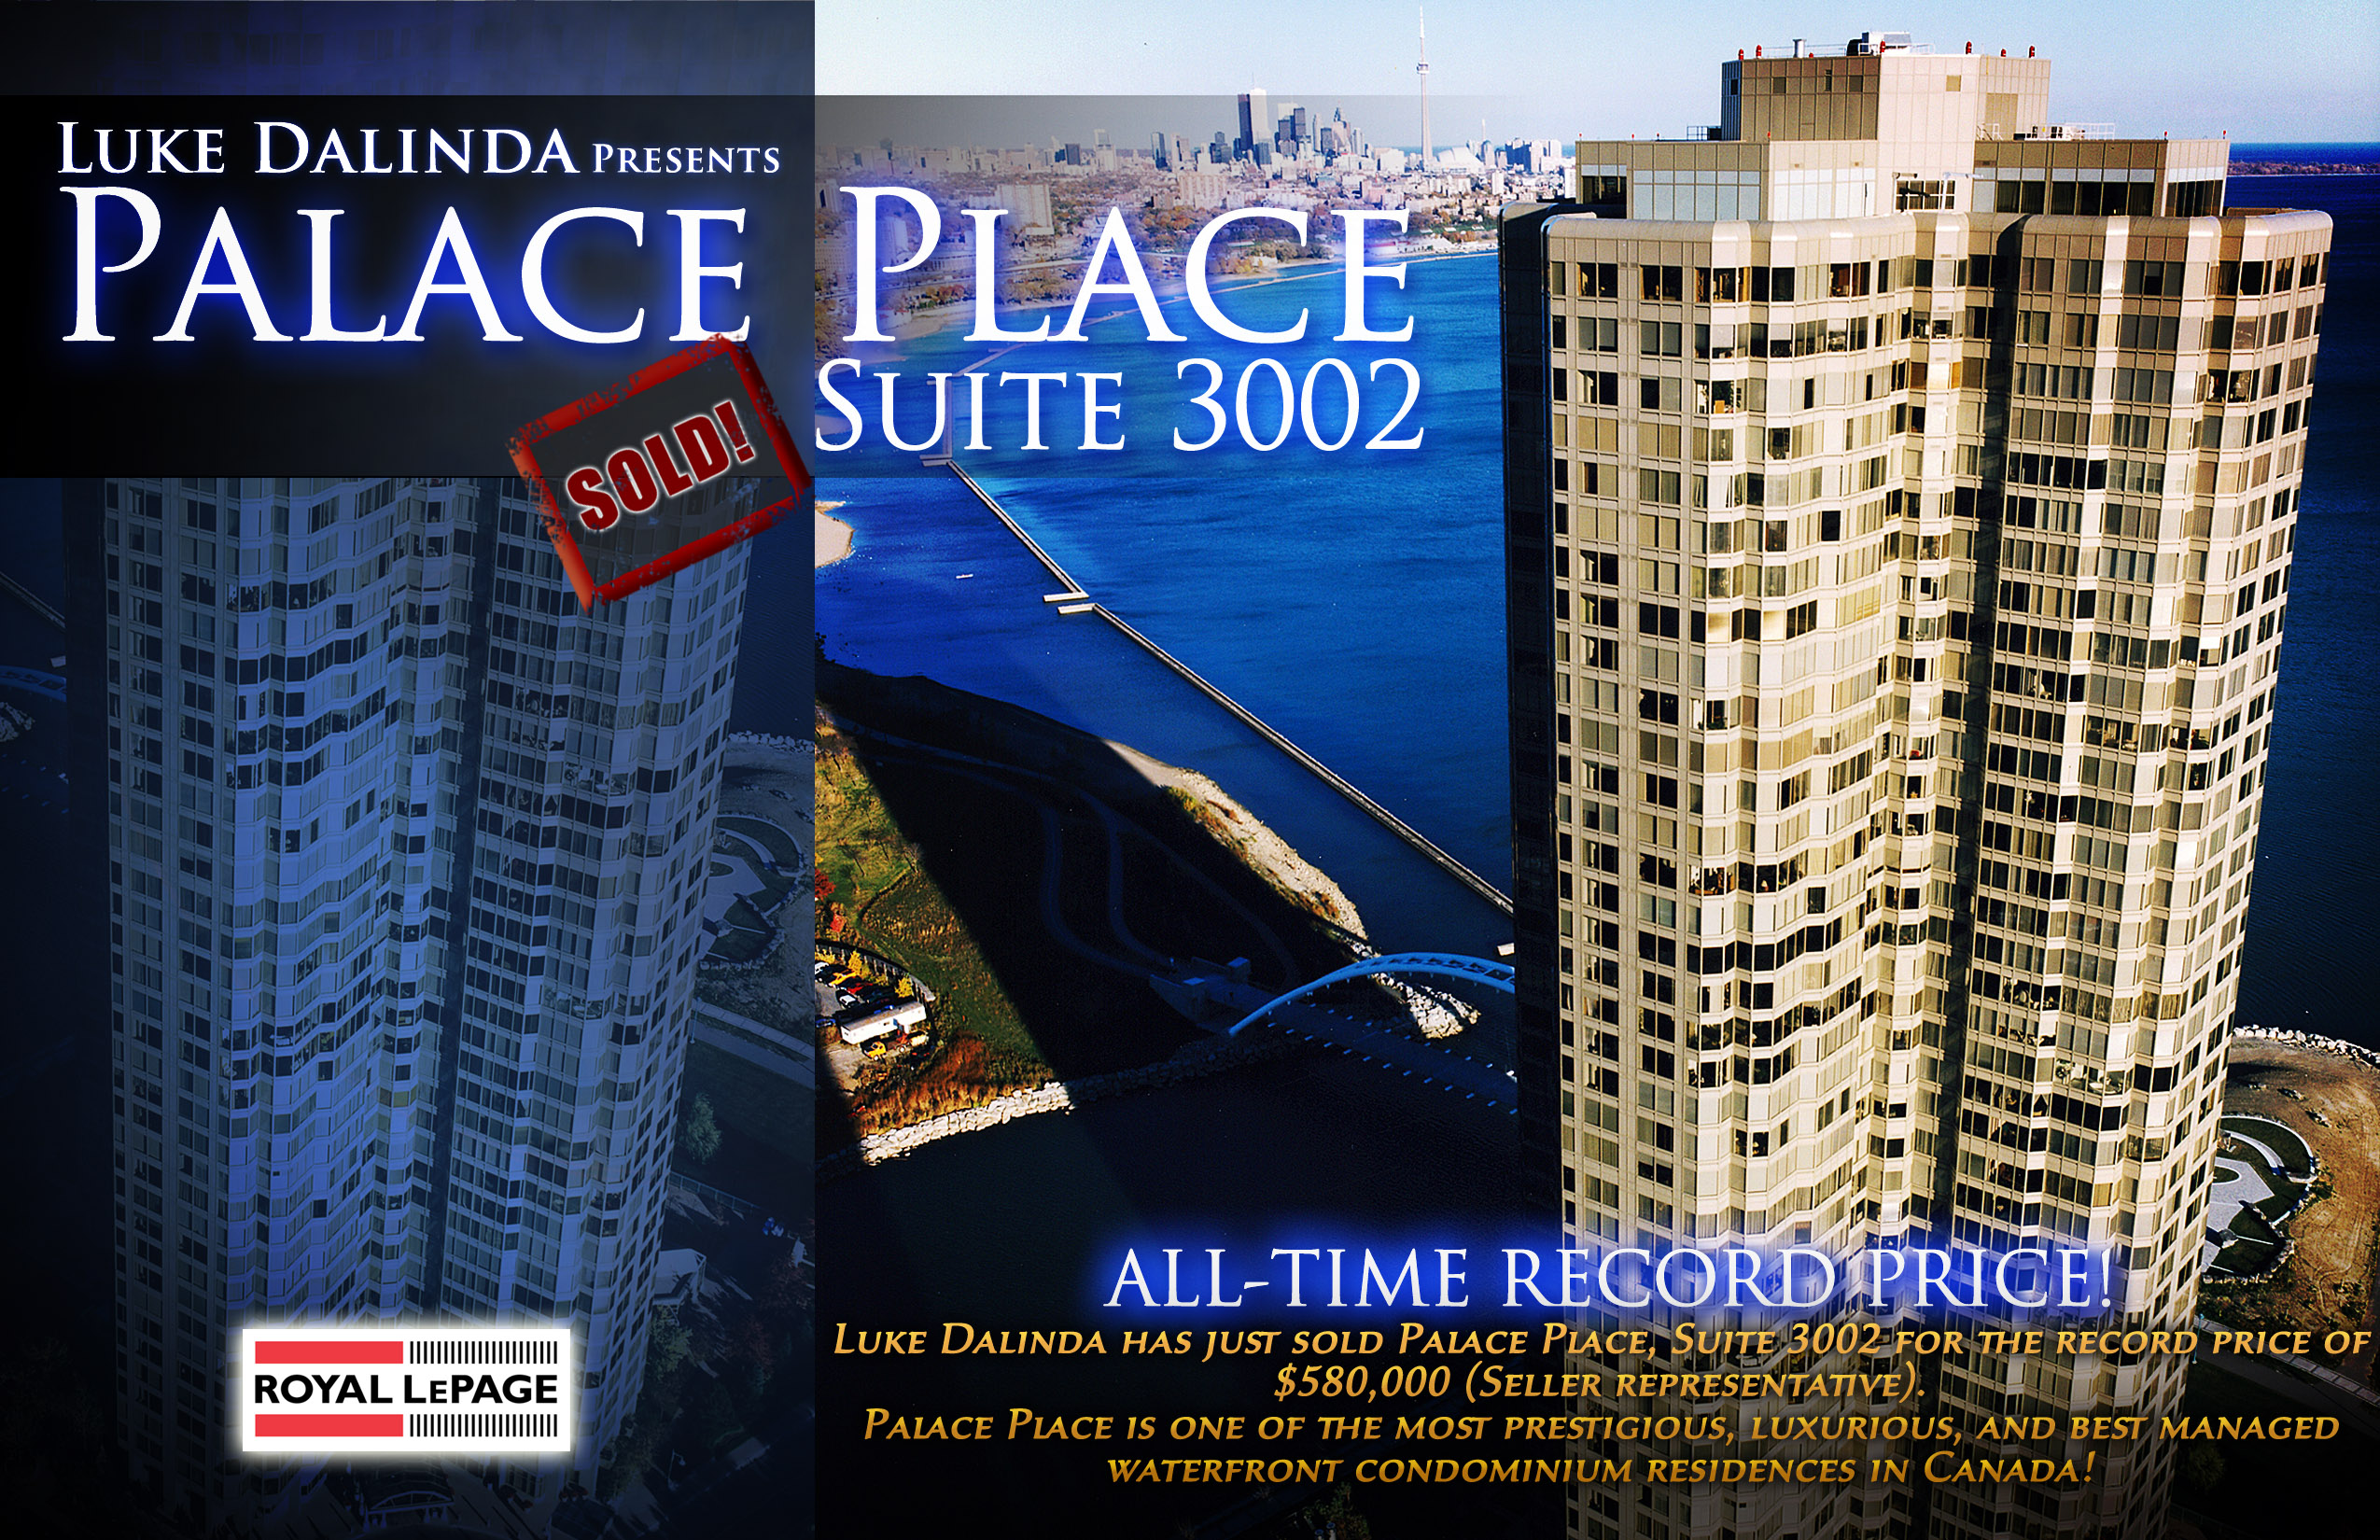 Palace Place Suite 3002 Archives Palace Place 1 Palace